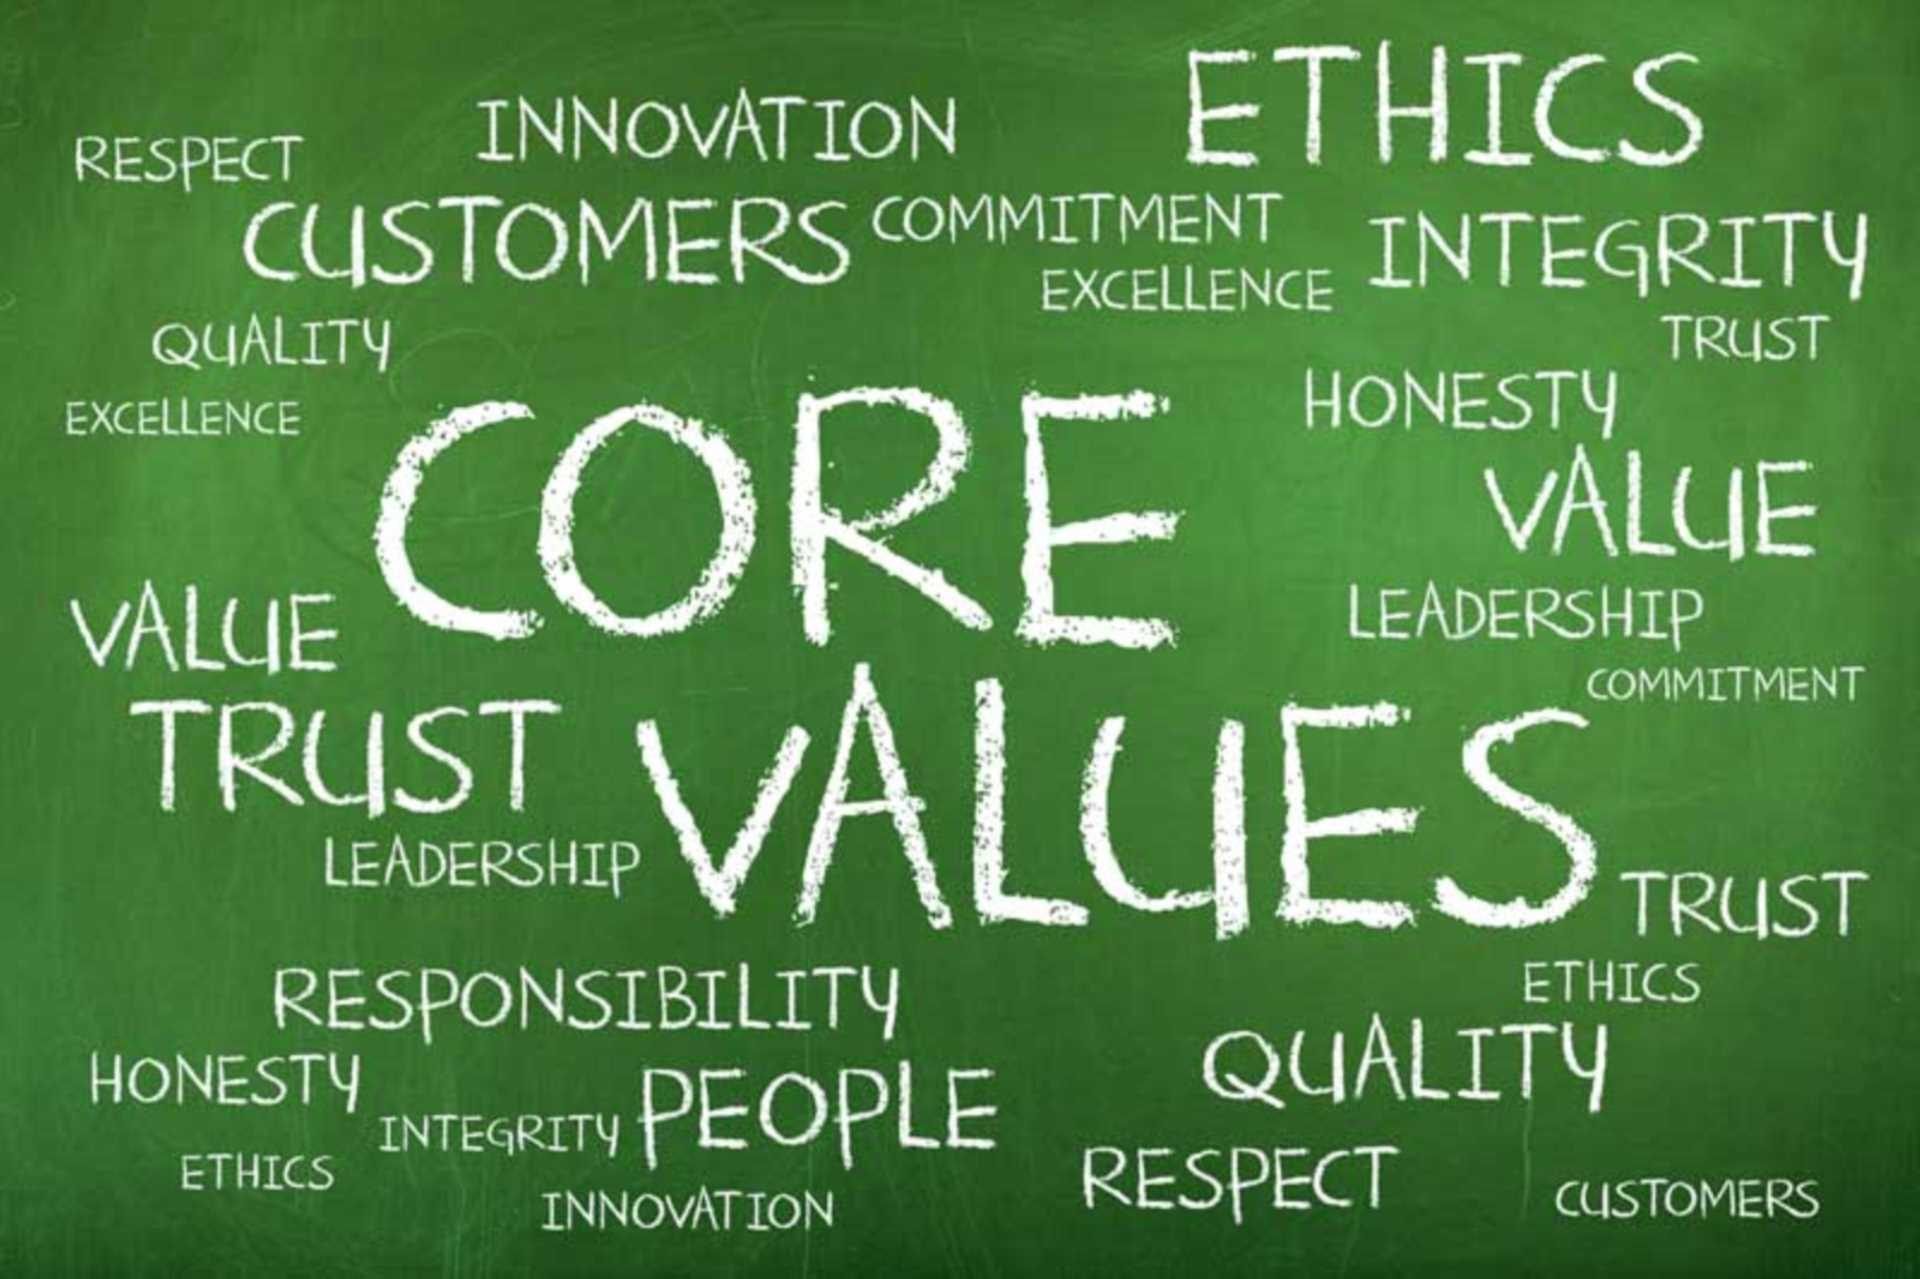 @Home Estate Agency values.  Learn more about who they are!